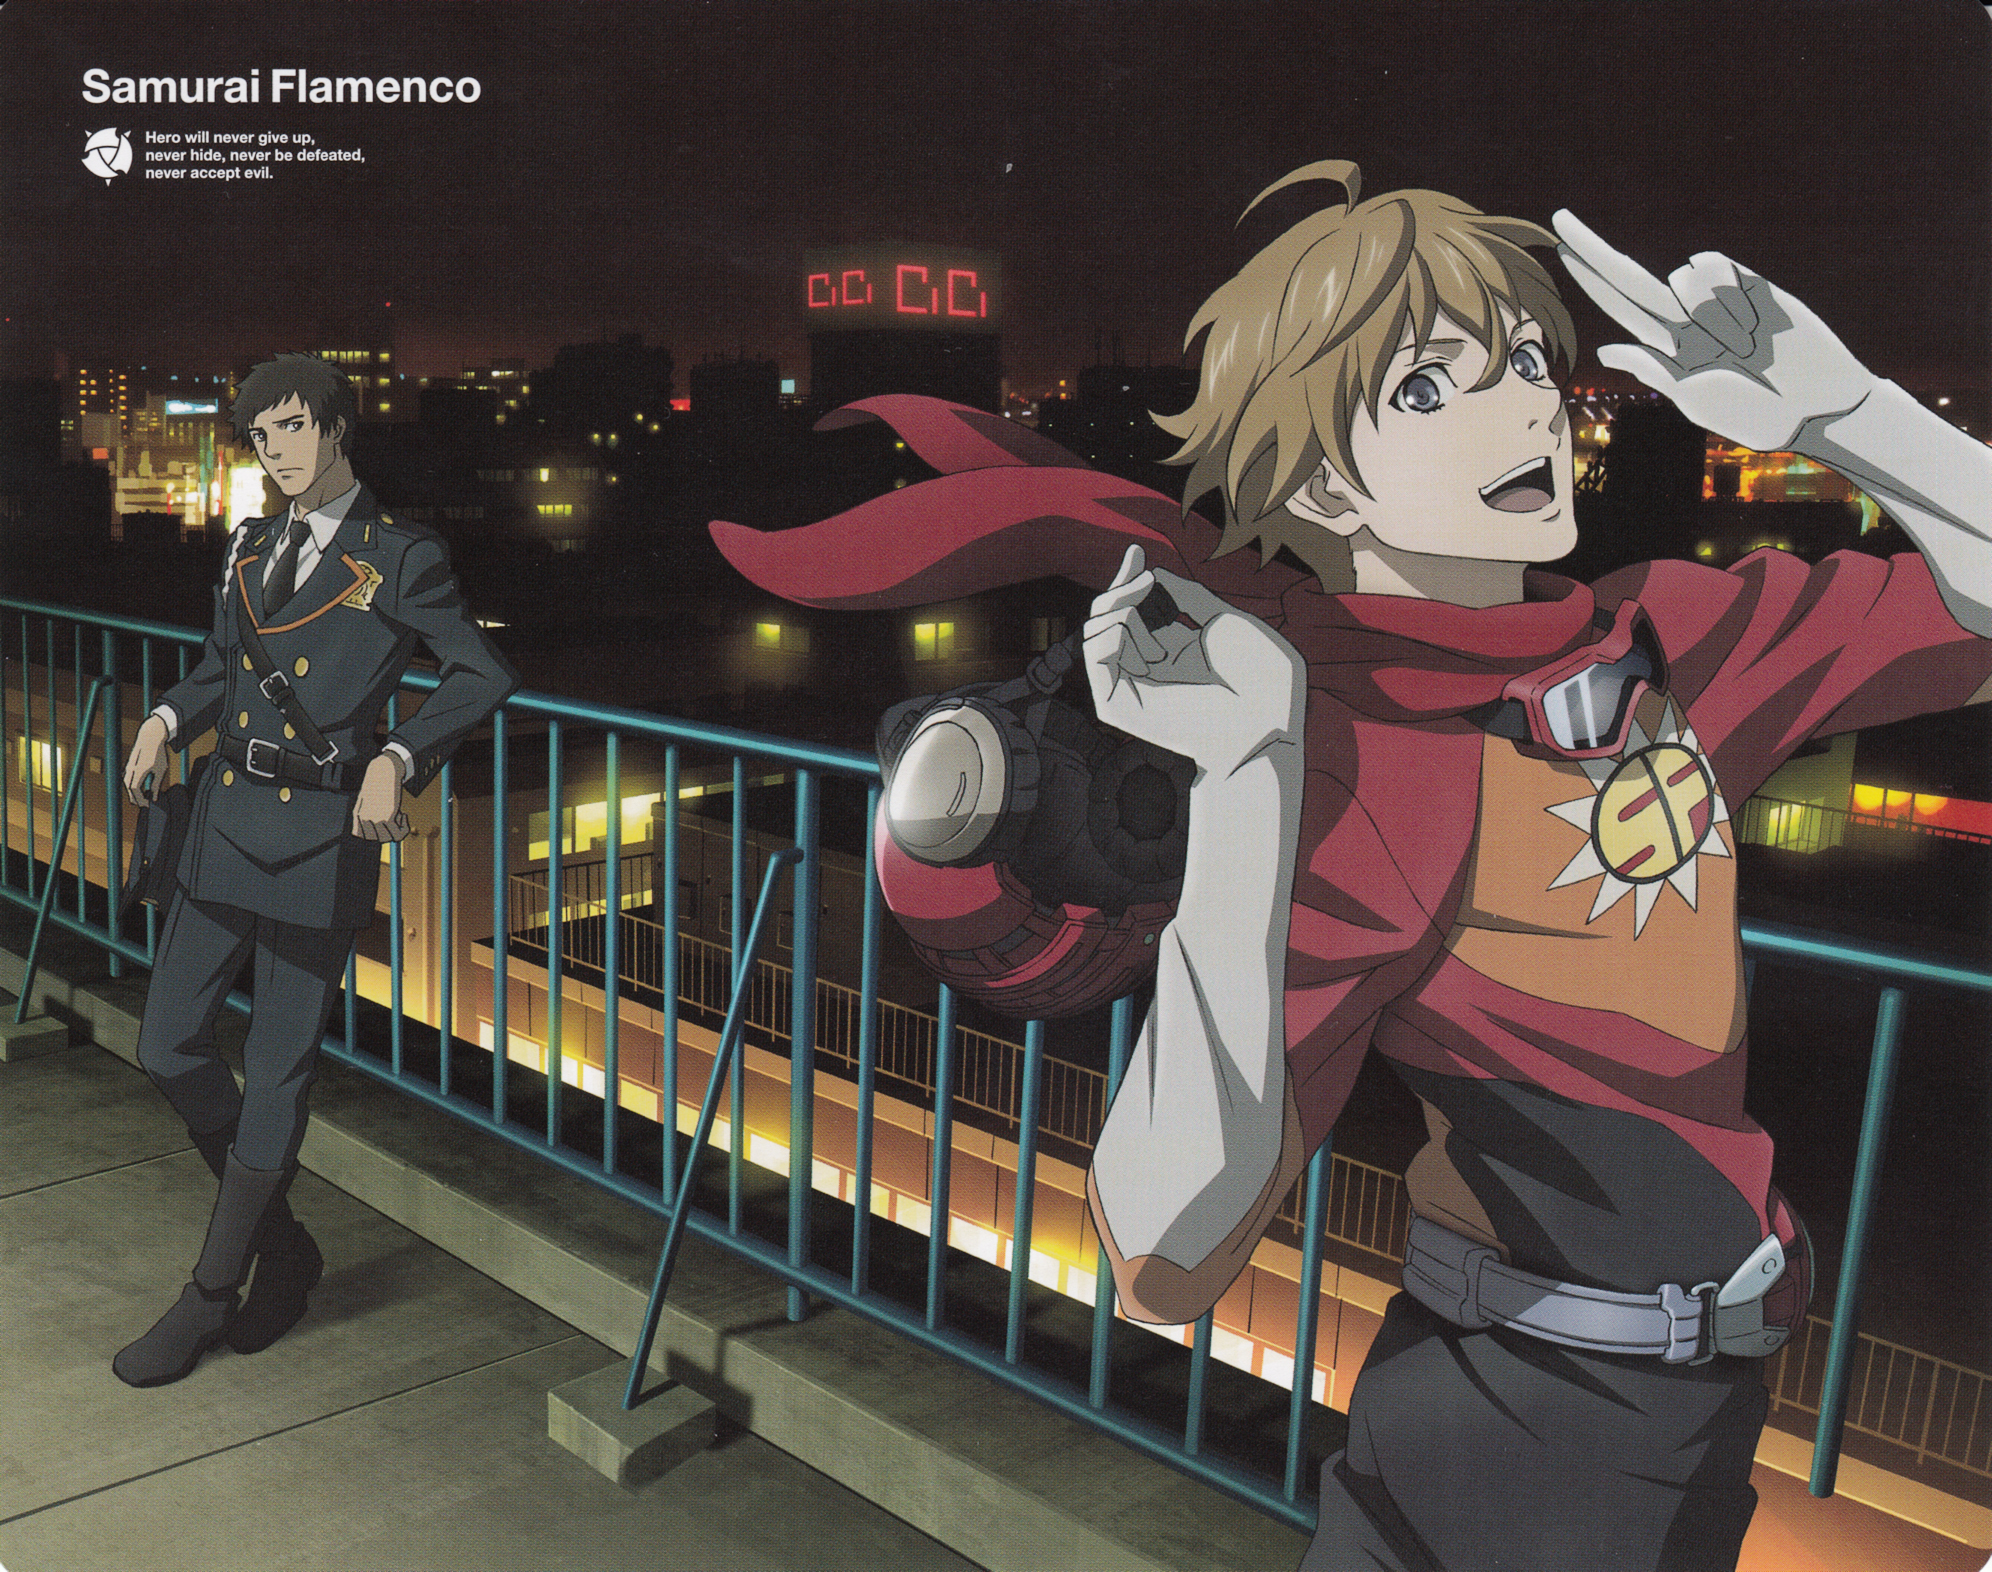 X 23 Cosplay Wallpaper Samurai Flamenco - Zer...